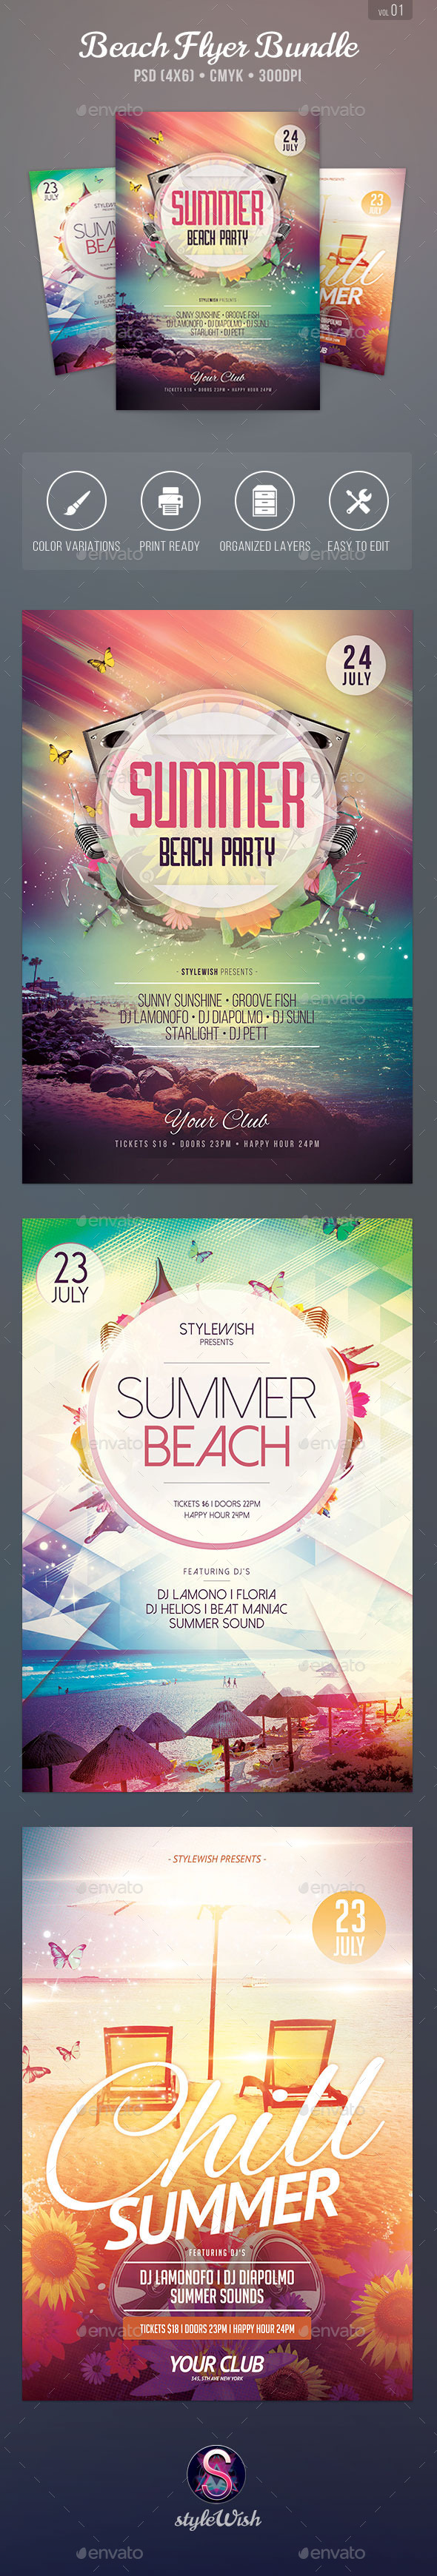 Summer Beach Flyer Bundle Vol.01 - Clubs & Parties Events